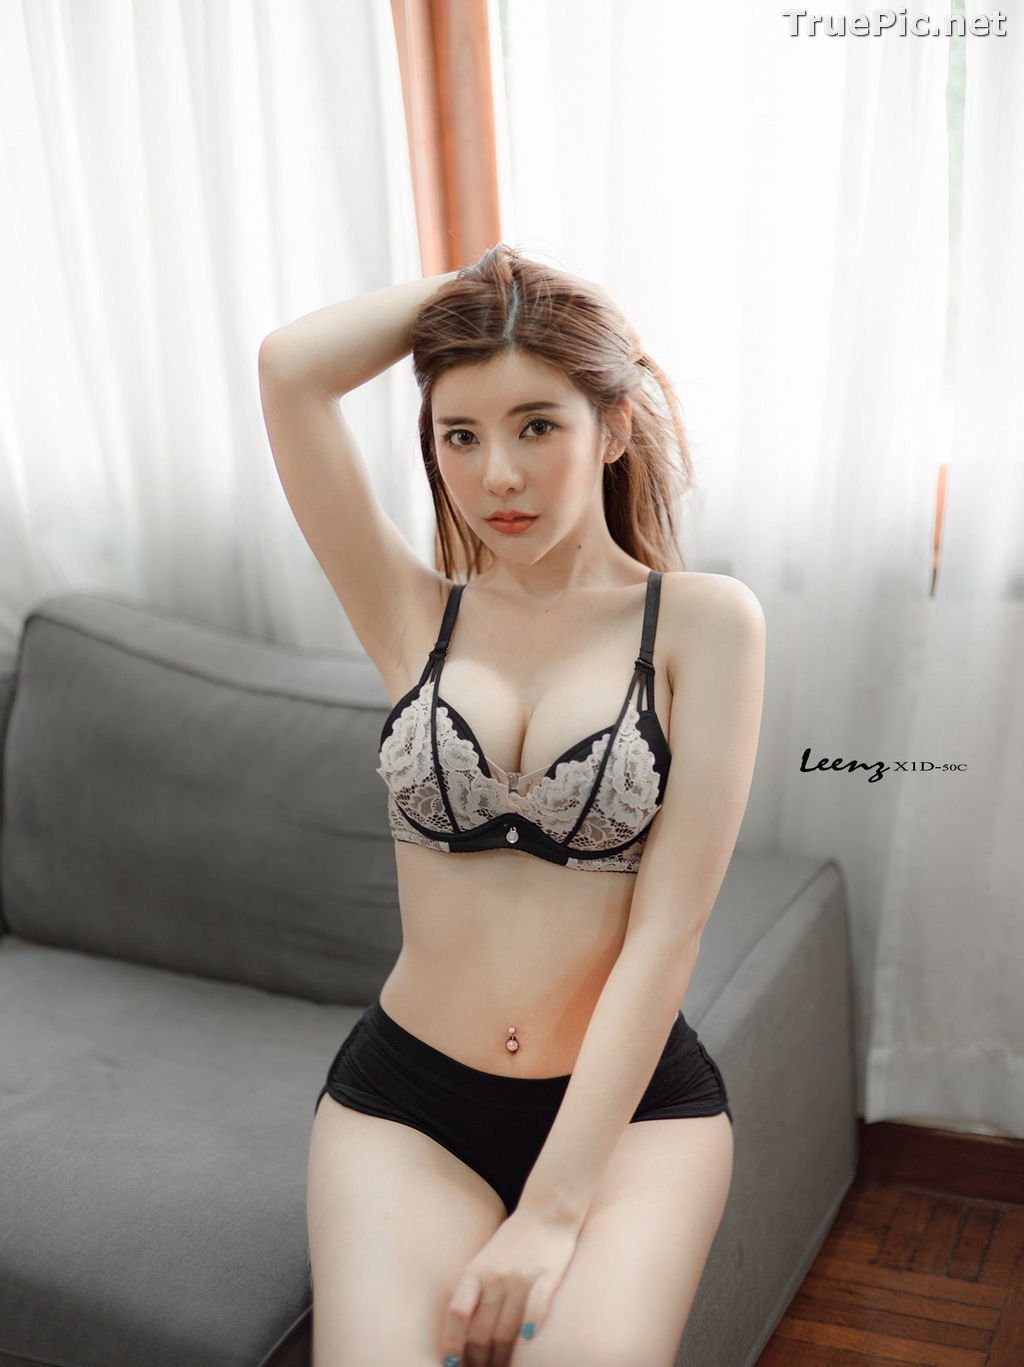 Image Thailand Model - Supitcha Boonkumphoung - Home Alone? Lingerie - TruePic.net - Picture-1